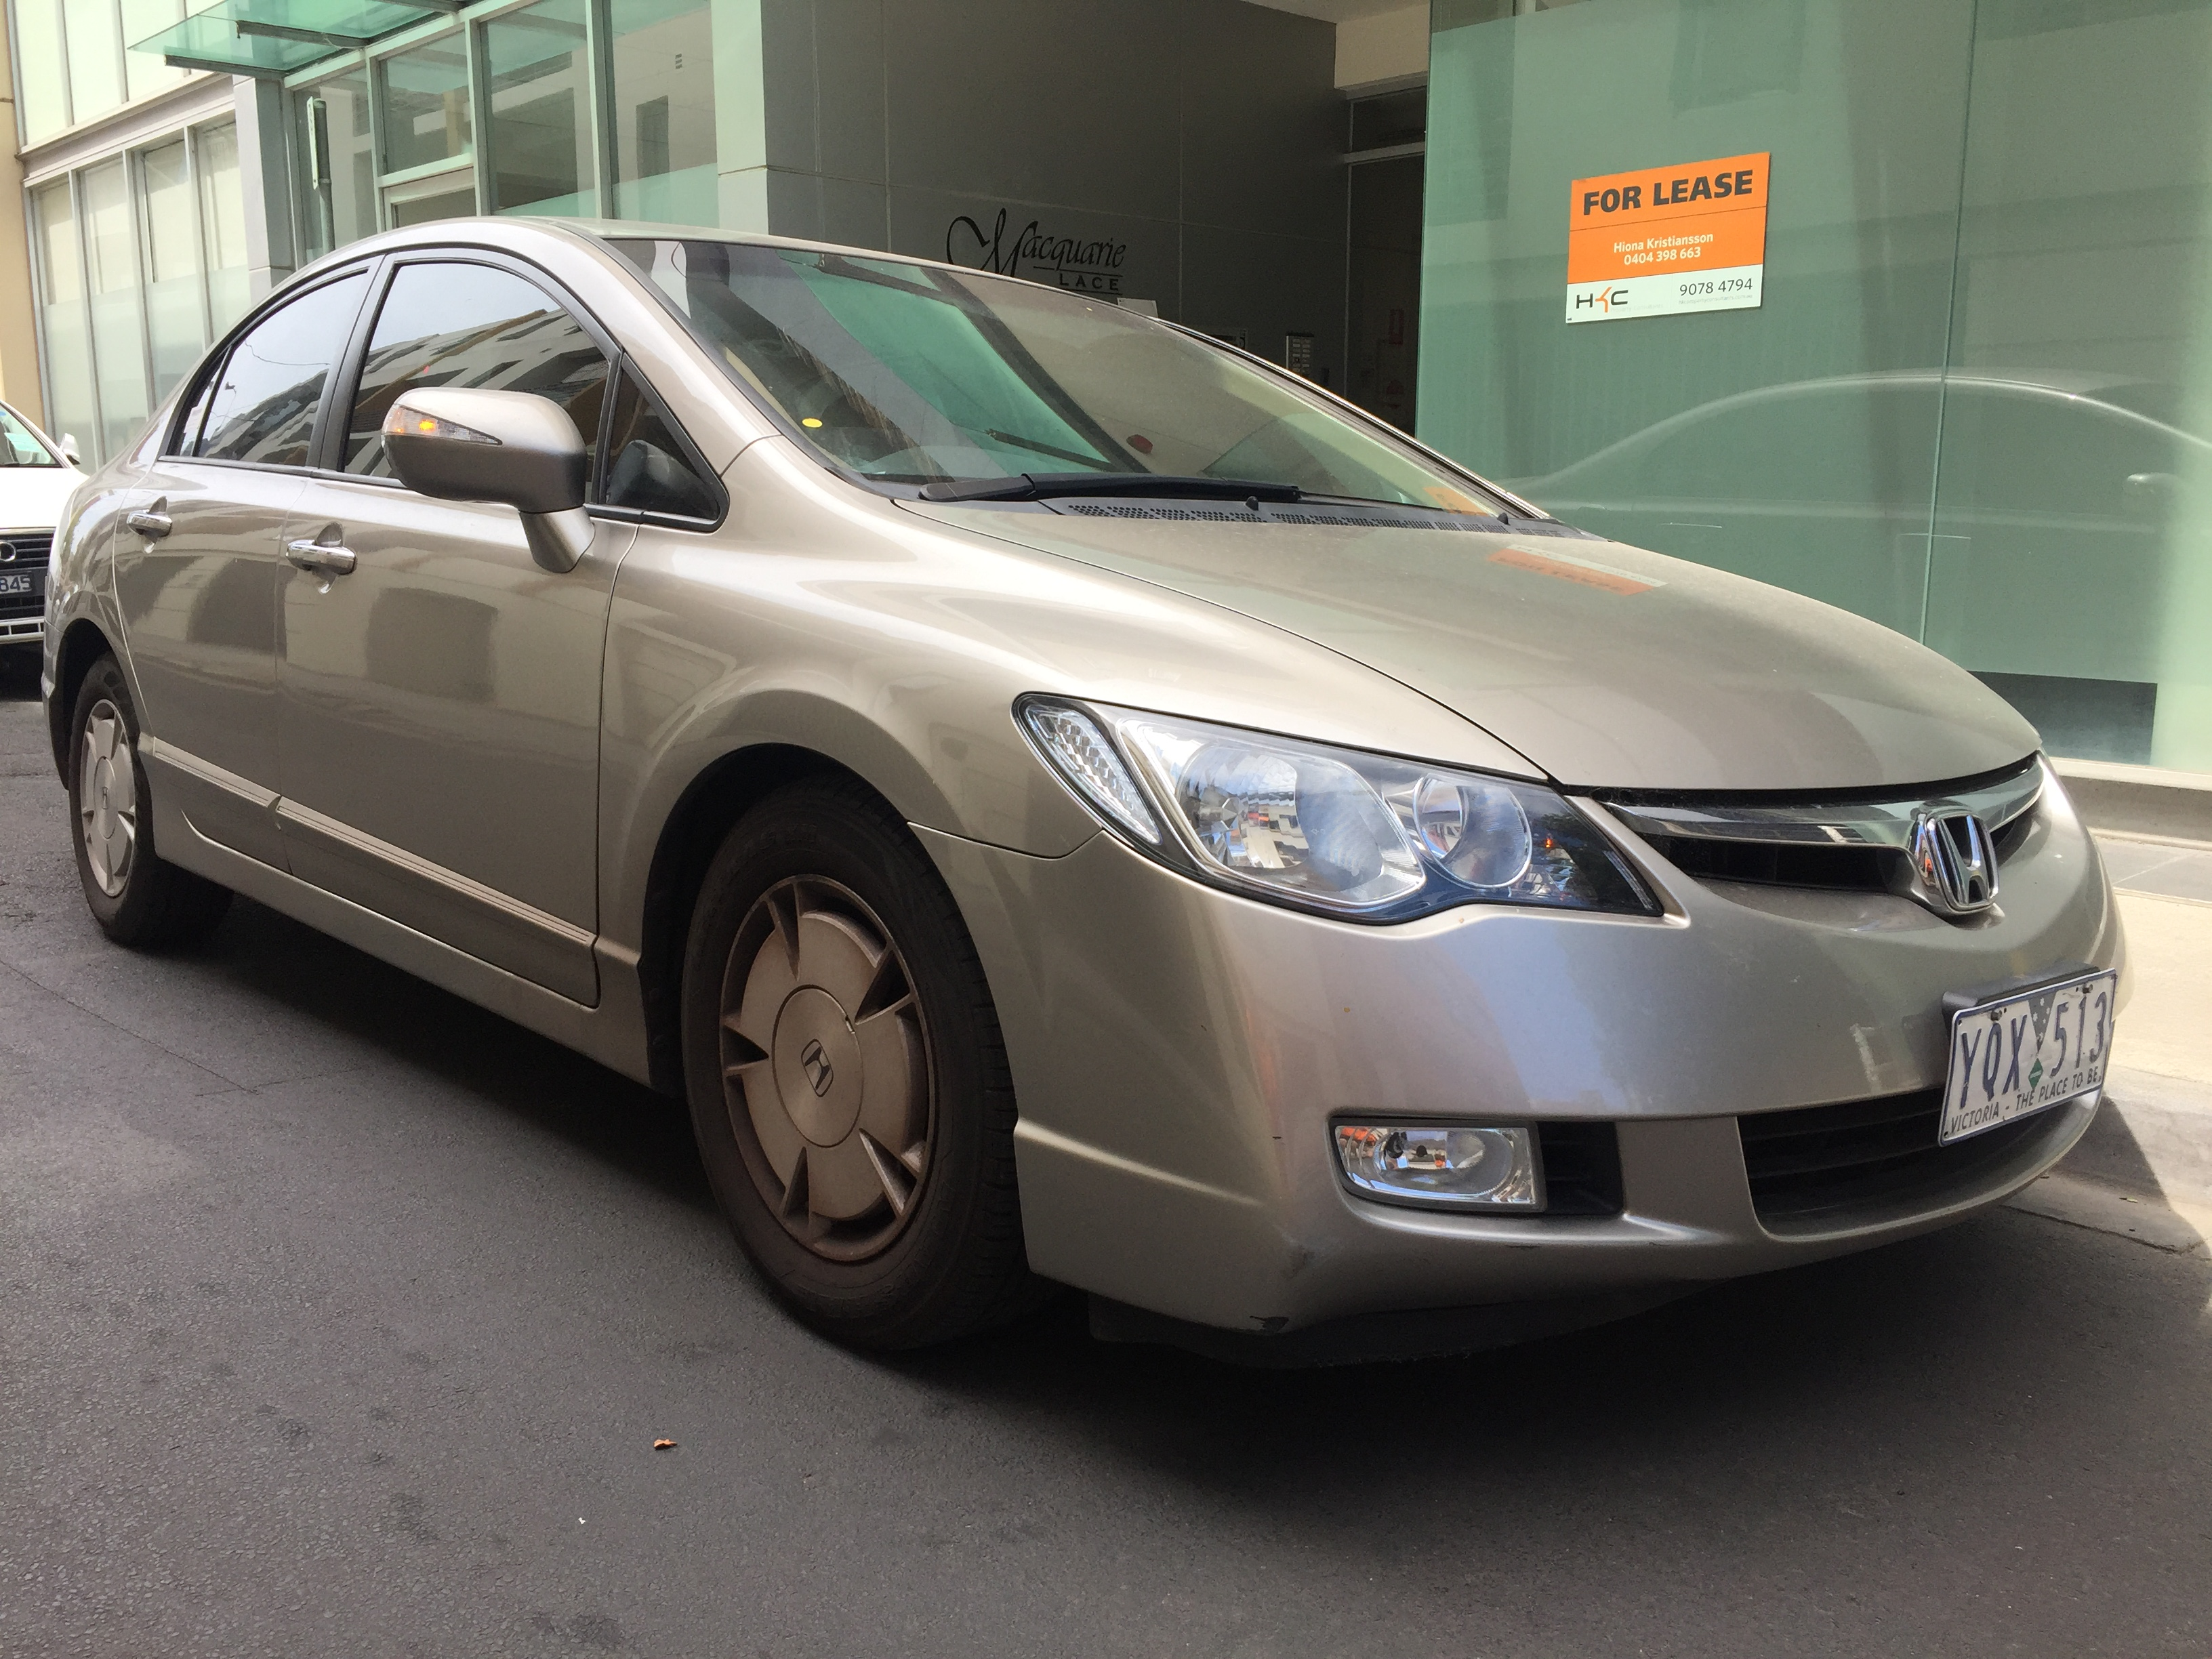 Picture of Ghirija's 2006 Honda Civic